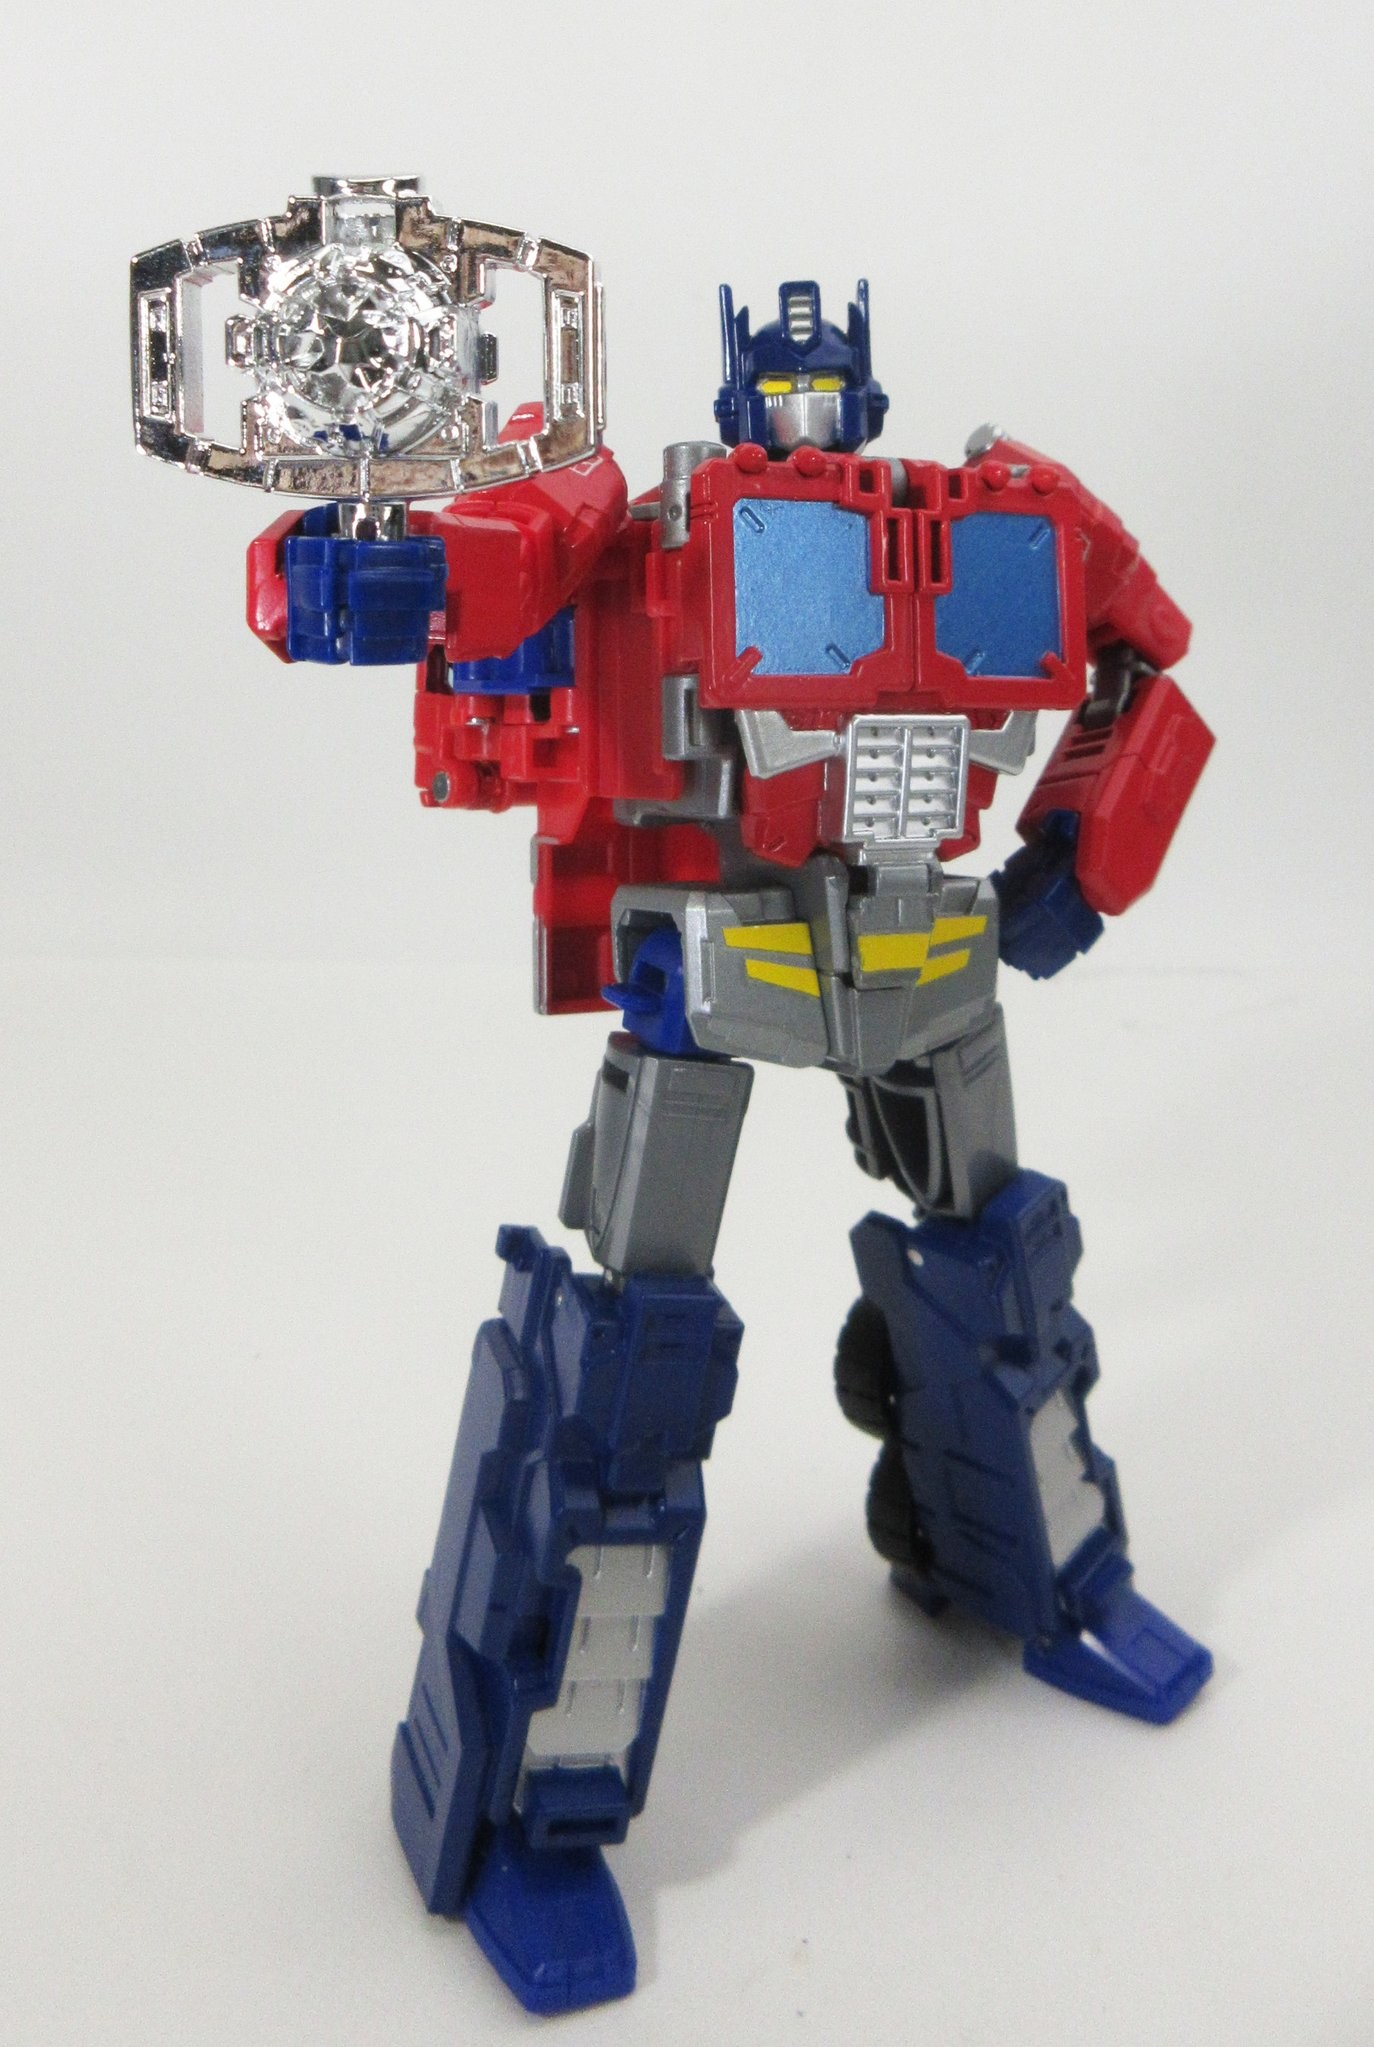 Transformers News: New Images of Transformers Generations Select Star Convoy